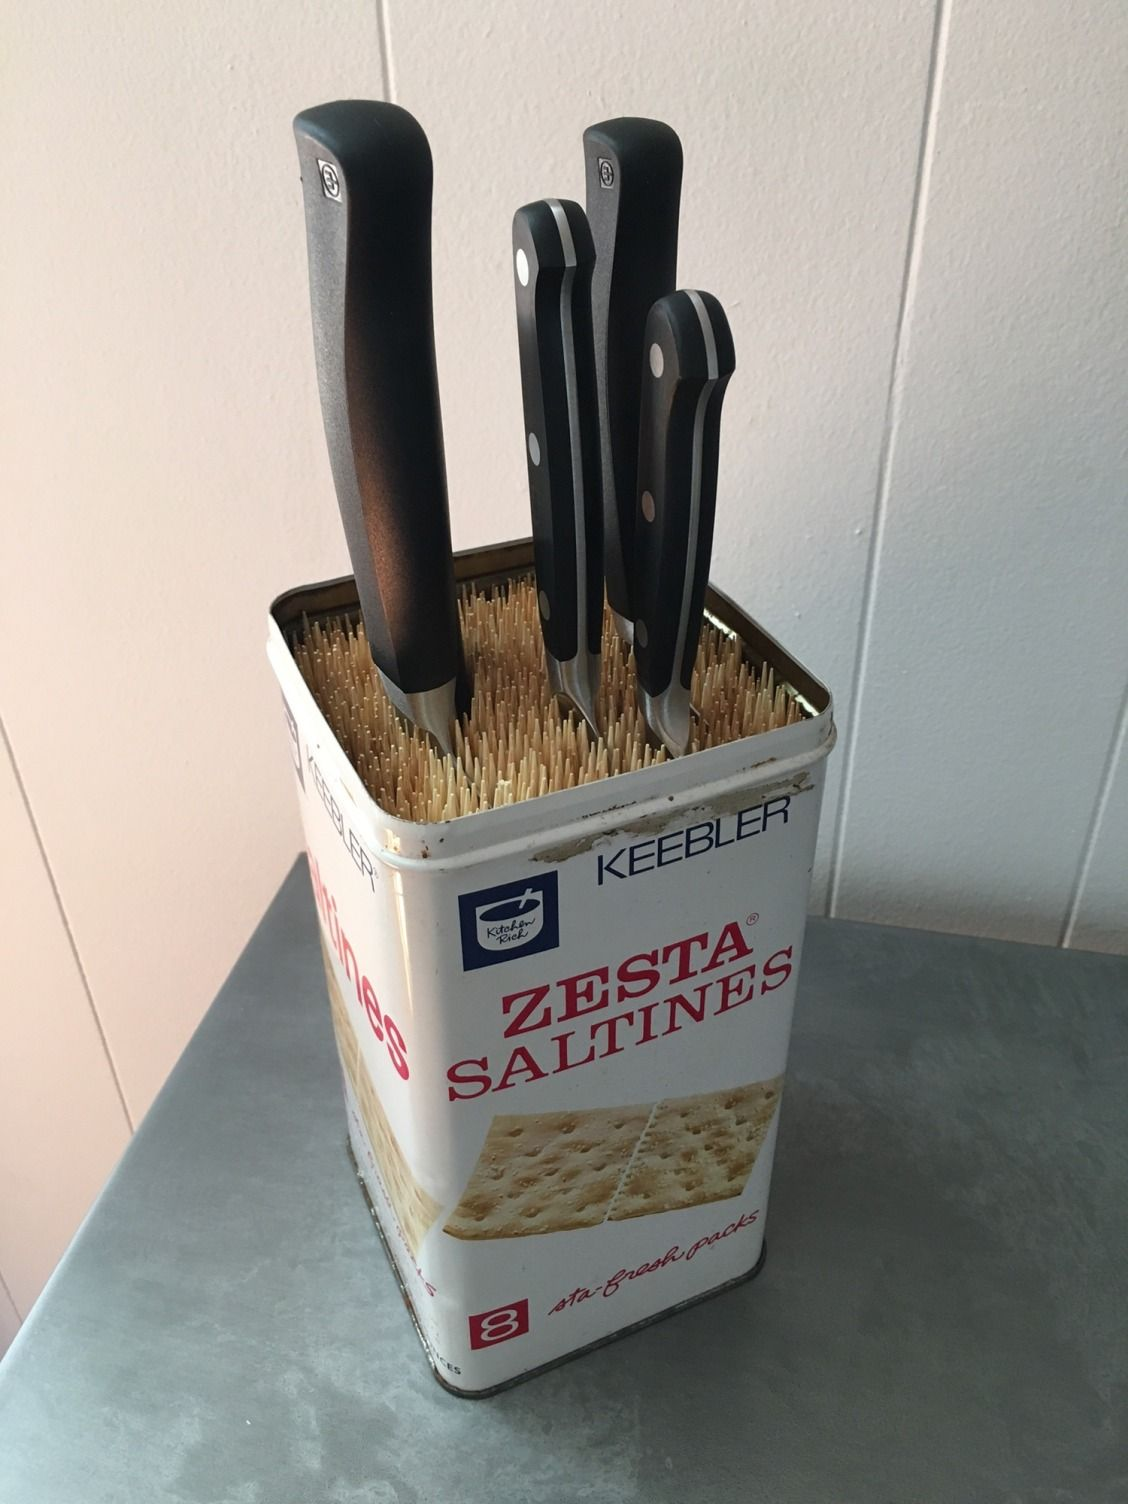 3 Clever Knife Storage Solutions #storagesolutions